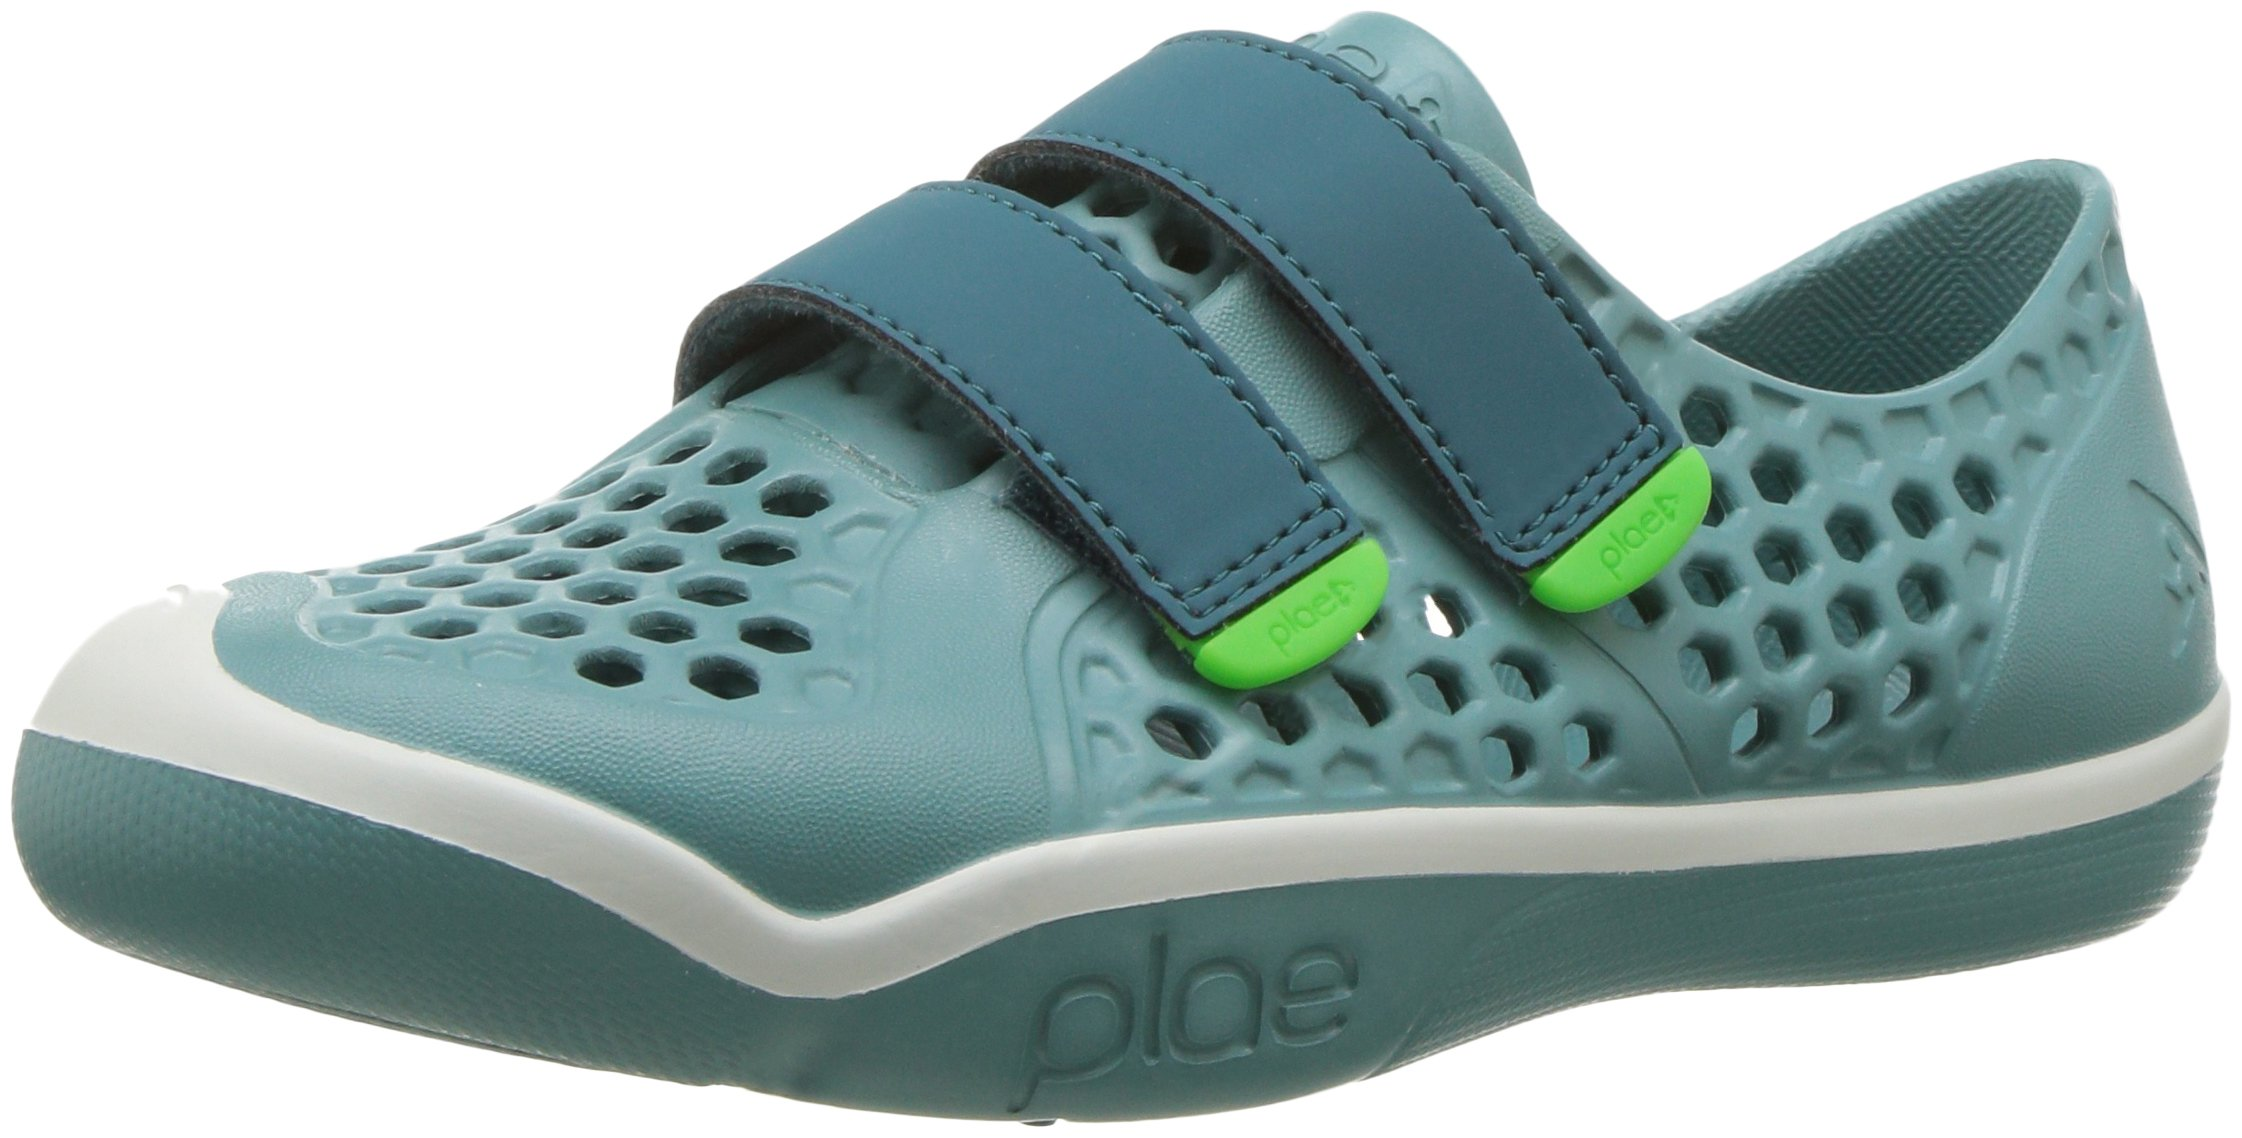 PLAE Baby Mimo Water Shoe Dusty Turquoise 8 Regular US Toddler